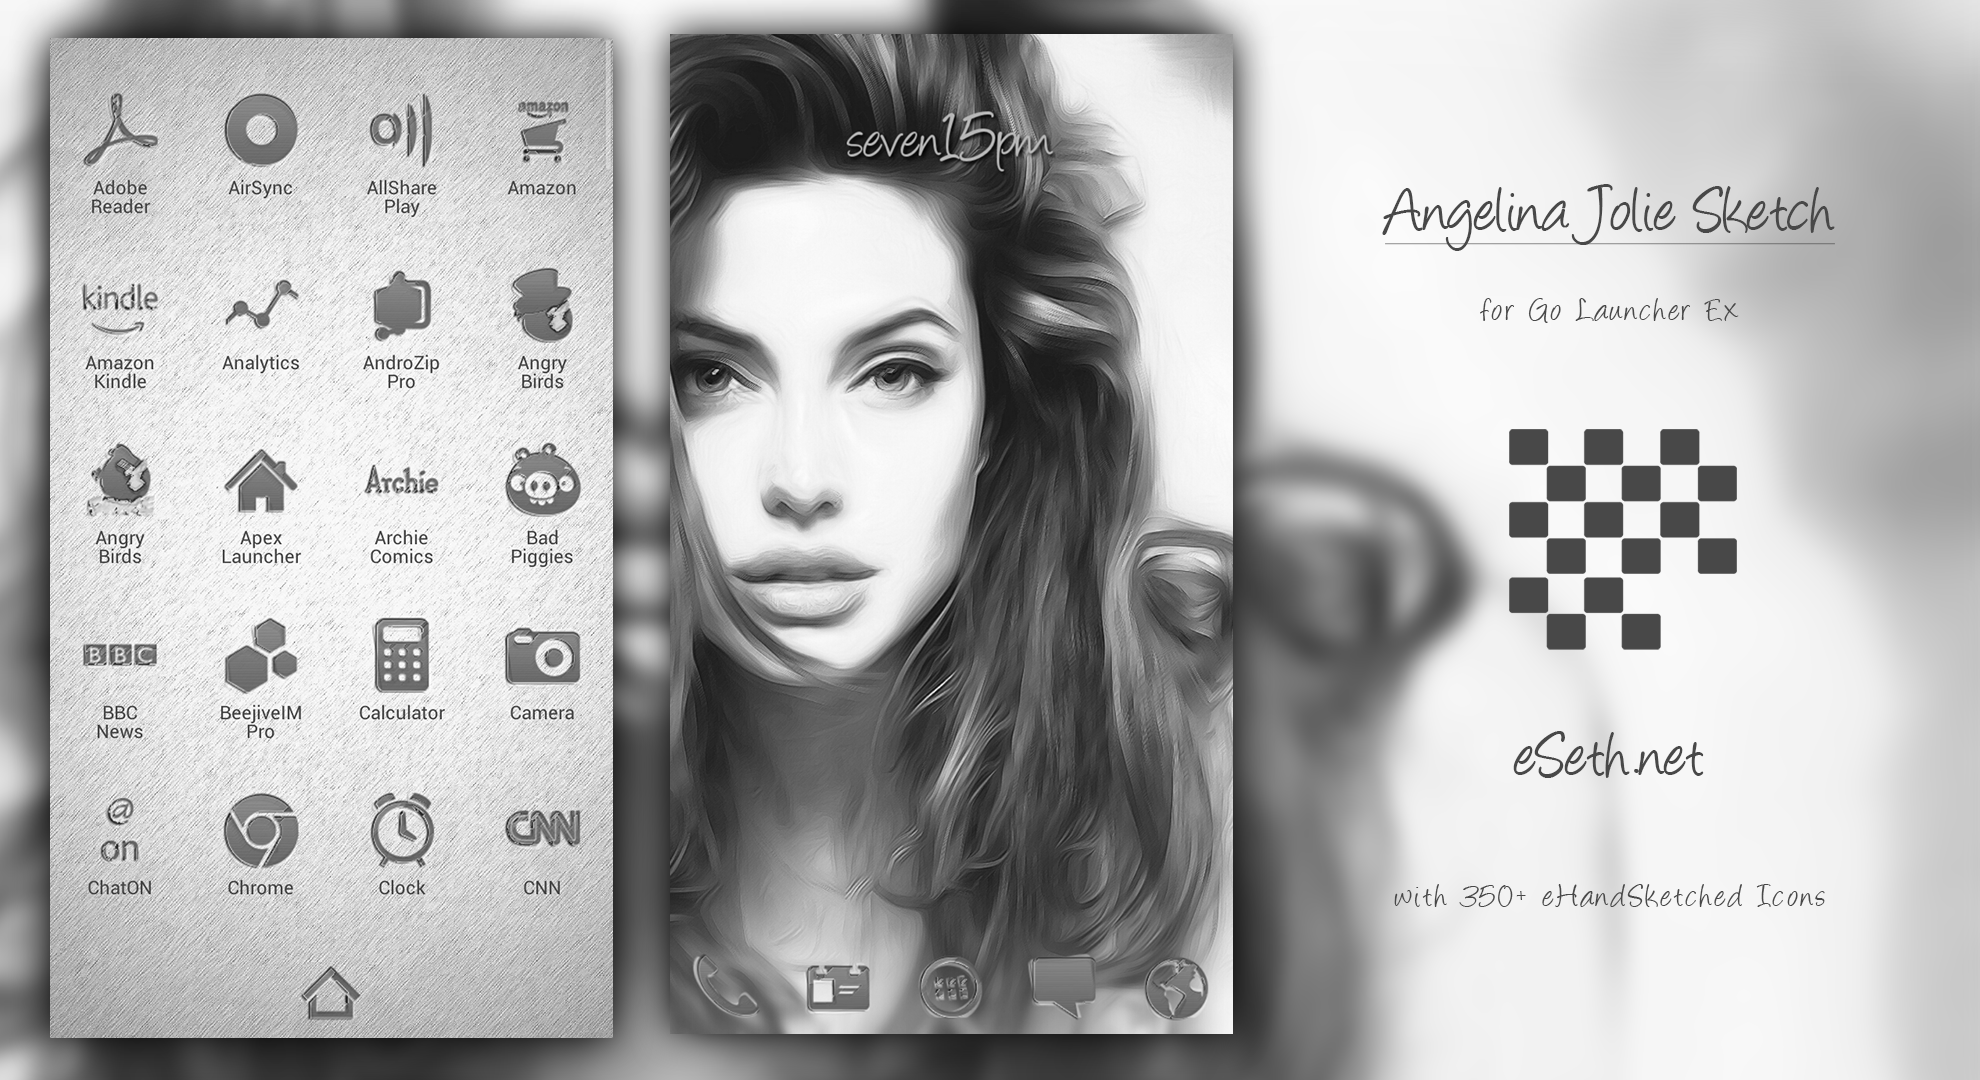 Angelina Jolie Sketch Theme by gseth